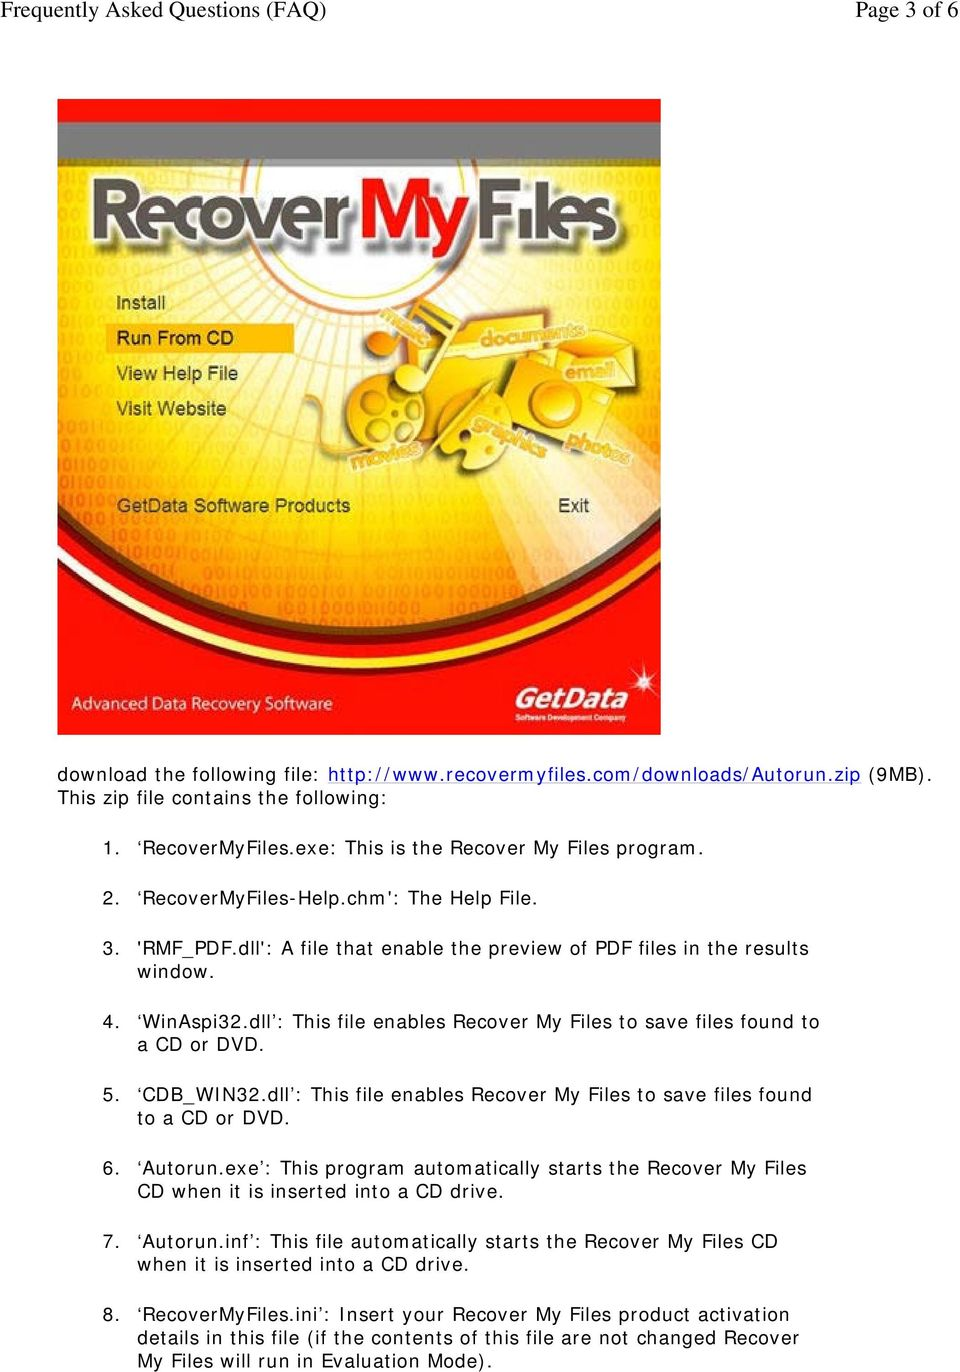 dll : This file enables Recover My Files to save files found to a CD or DVD. 5. CDB_WIN32.dll : This file enables Recover My Files to save files found to a CD or DVD. 6. Autorun.